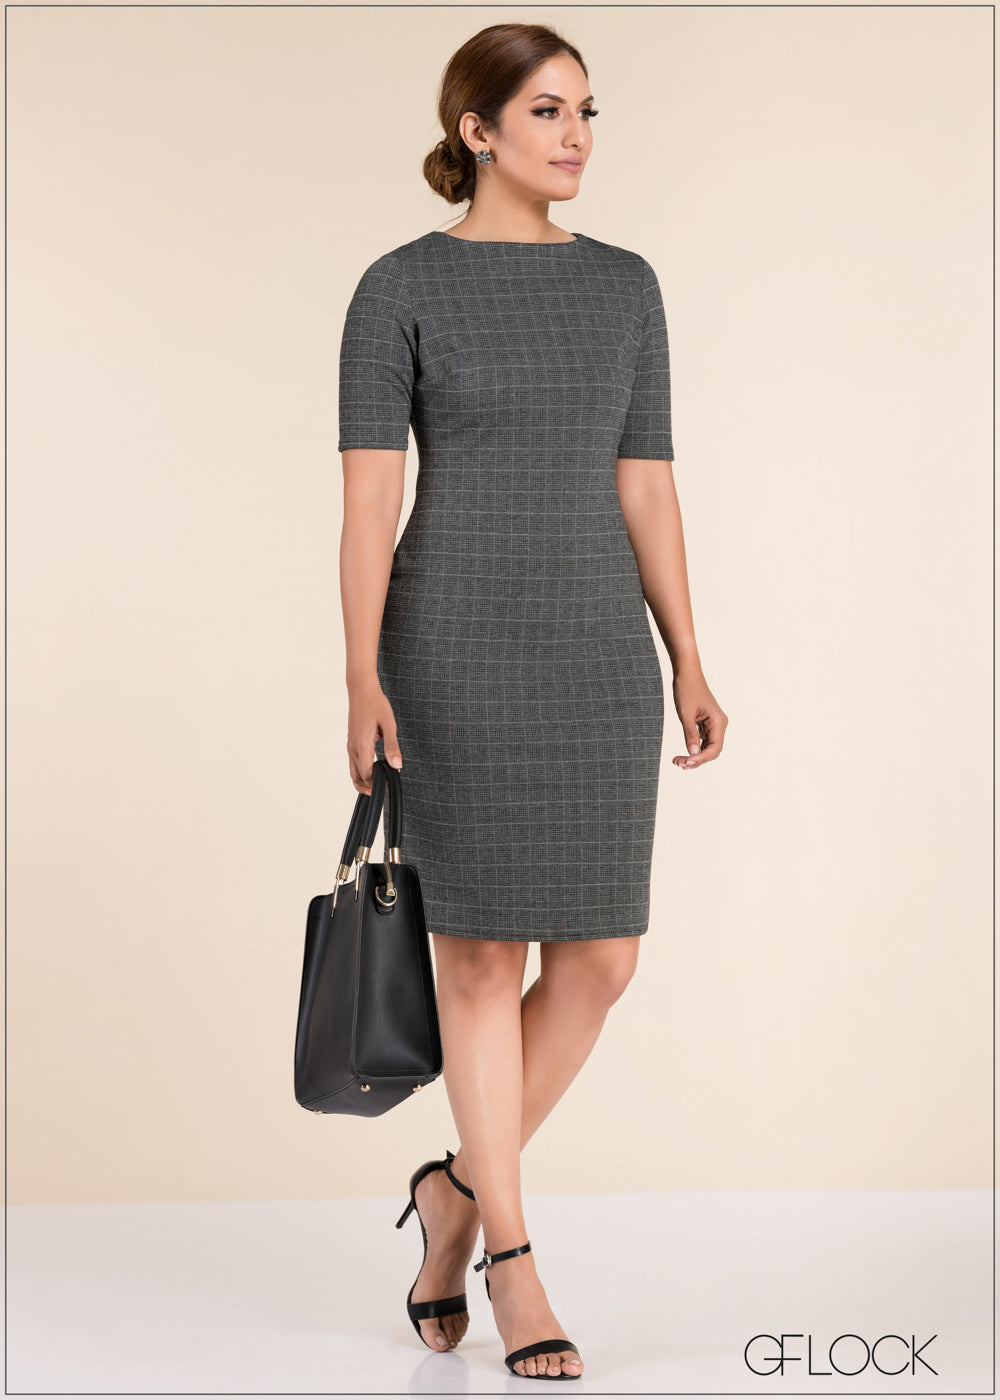 Plaid Shift Dress - GFLOCK.LK